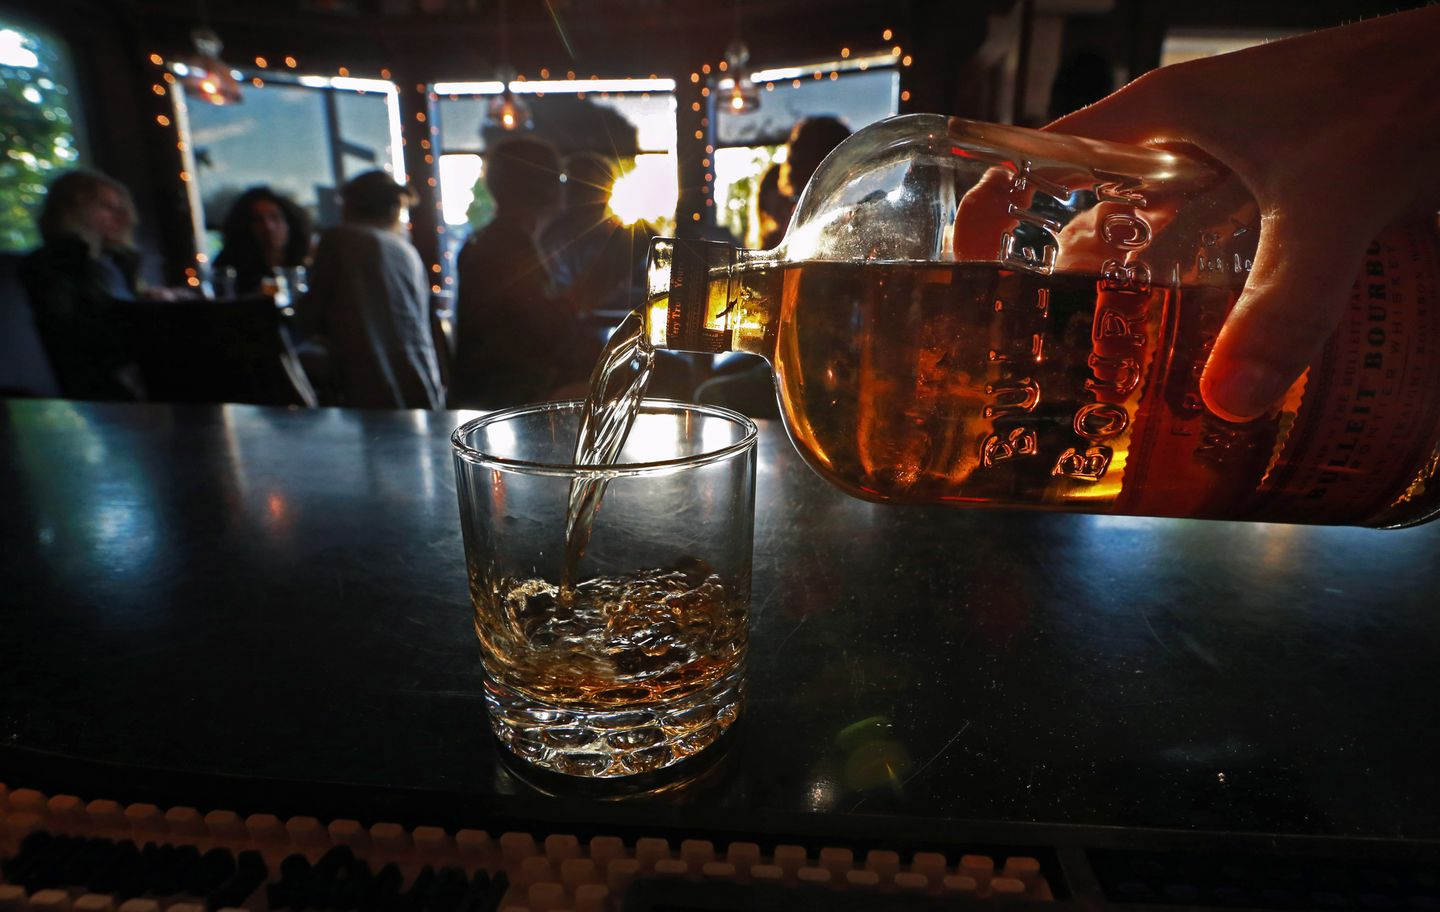 Stricter Alcohol Policies Related to Lower Risk of Cancer